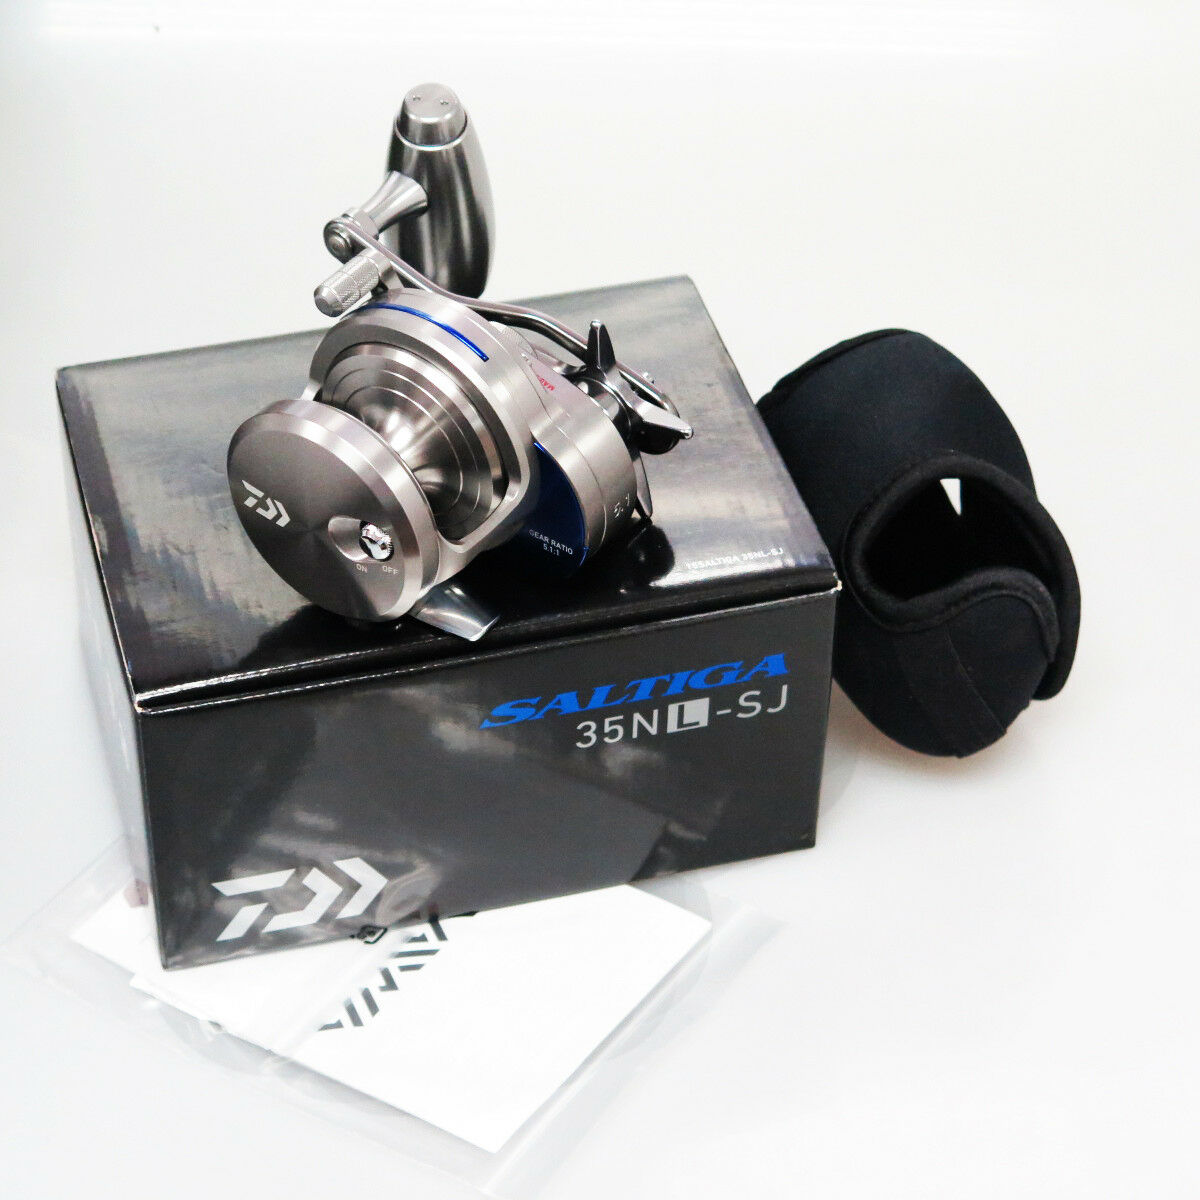 DAIWA SALTIGA 35NL-SJ Left Handle Saltwater Reel Fedex priority 2day to Usa